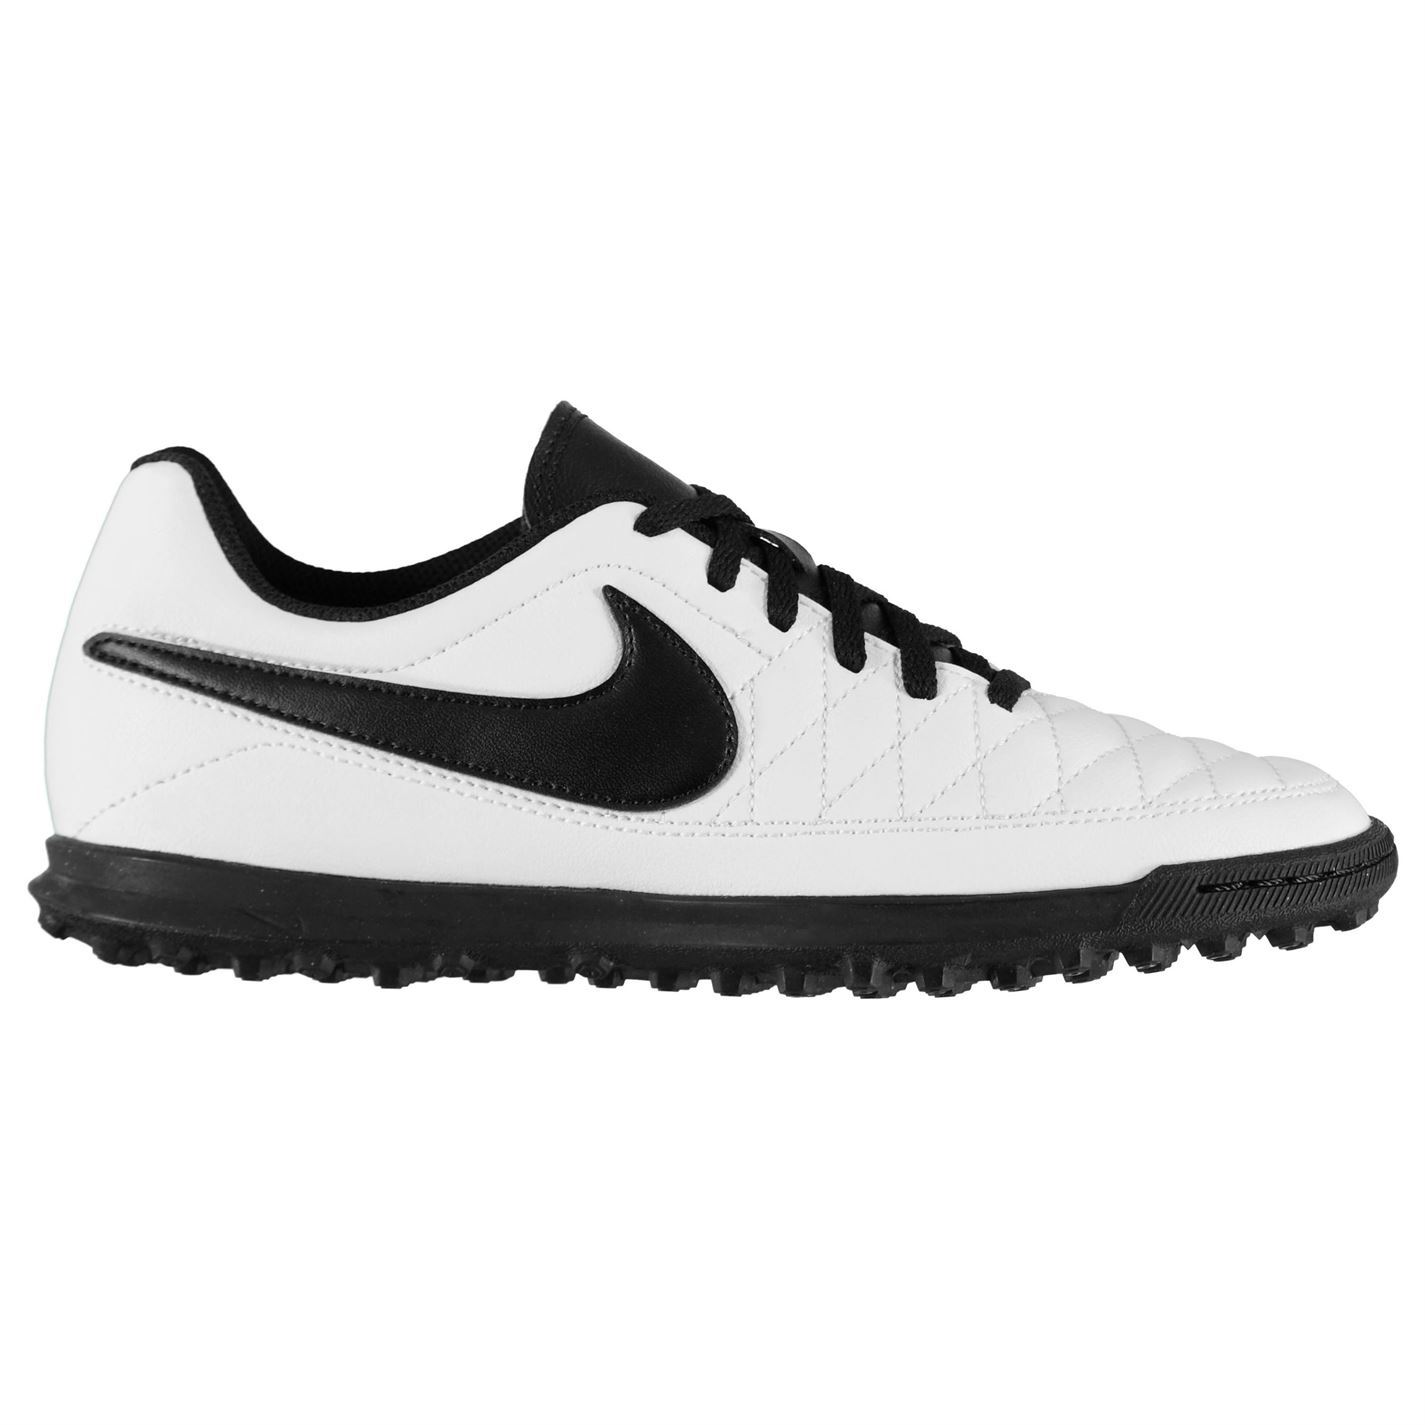 Nike-majestry-Astro-Turf-Football-Baskets-Pour-Homme-Football-Baskets-Chaussures miniature 11